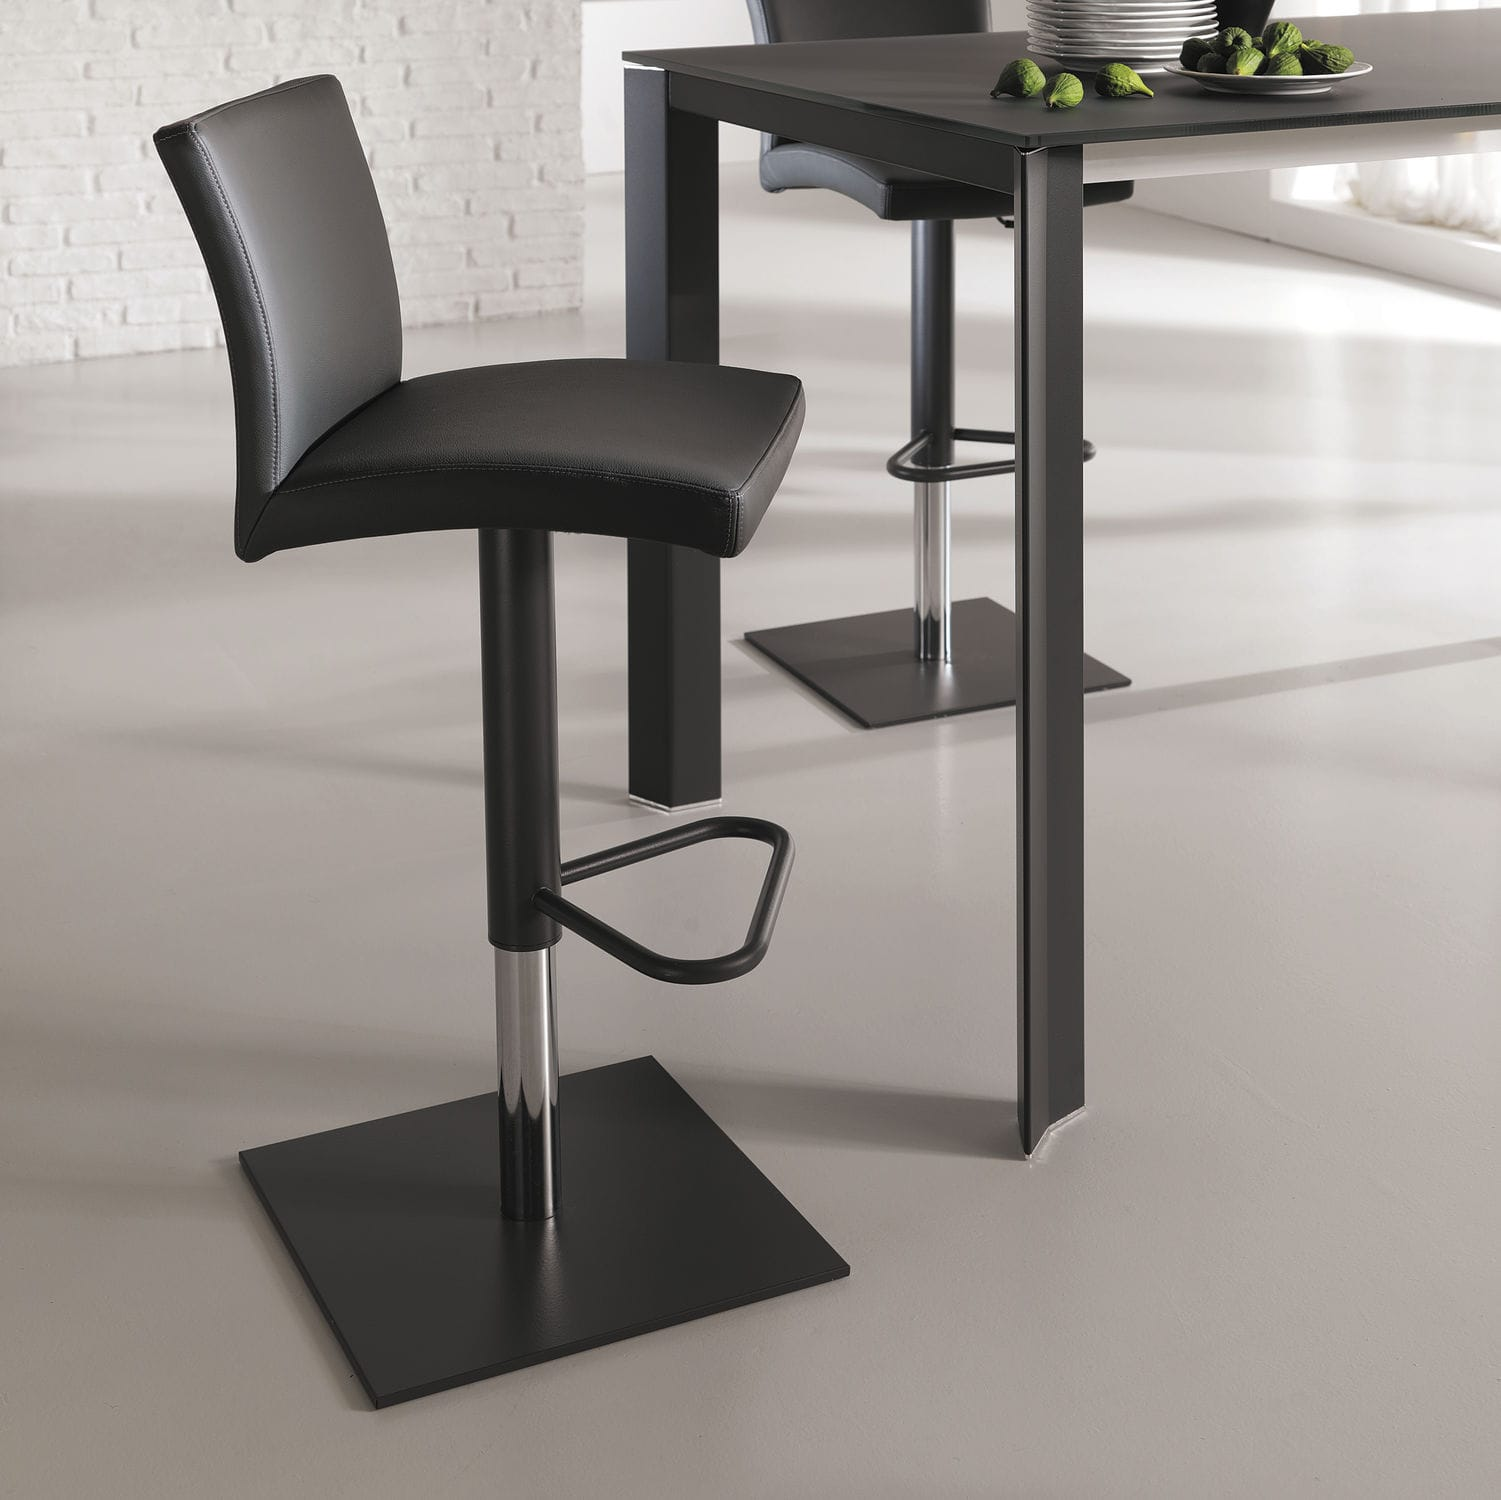 Cool Contemporary Bar Chair Upholstered Swivel Adjustable Gamerscity Chair Design For Home Gamerscityorg